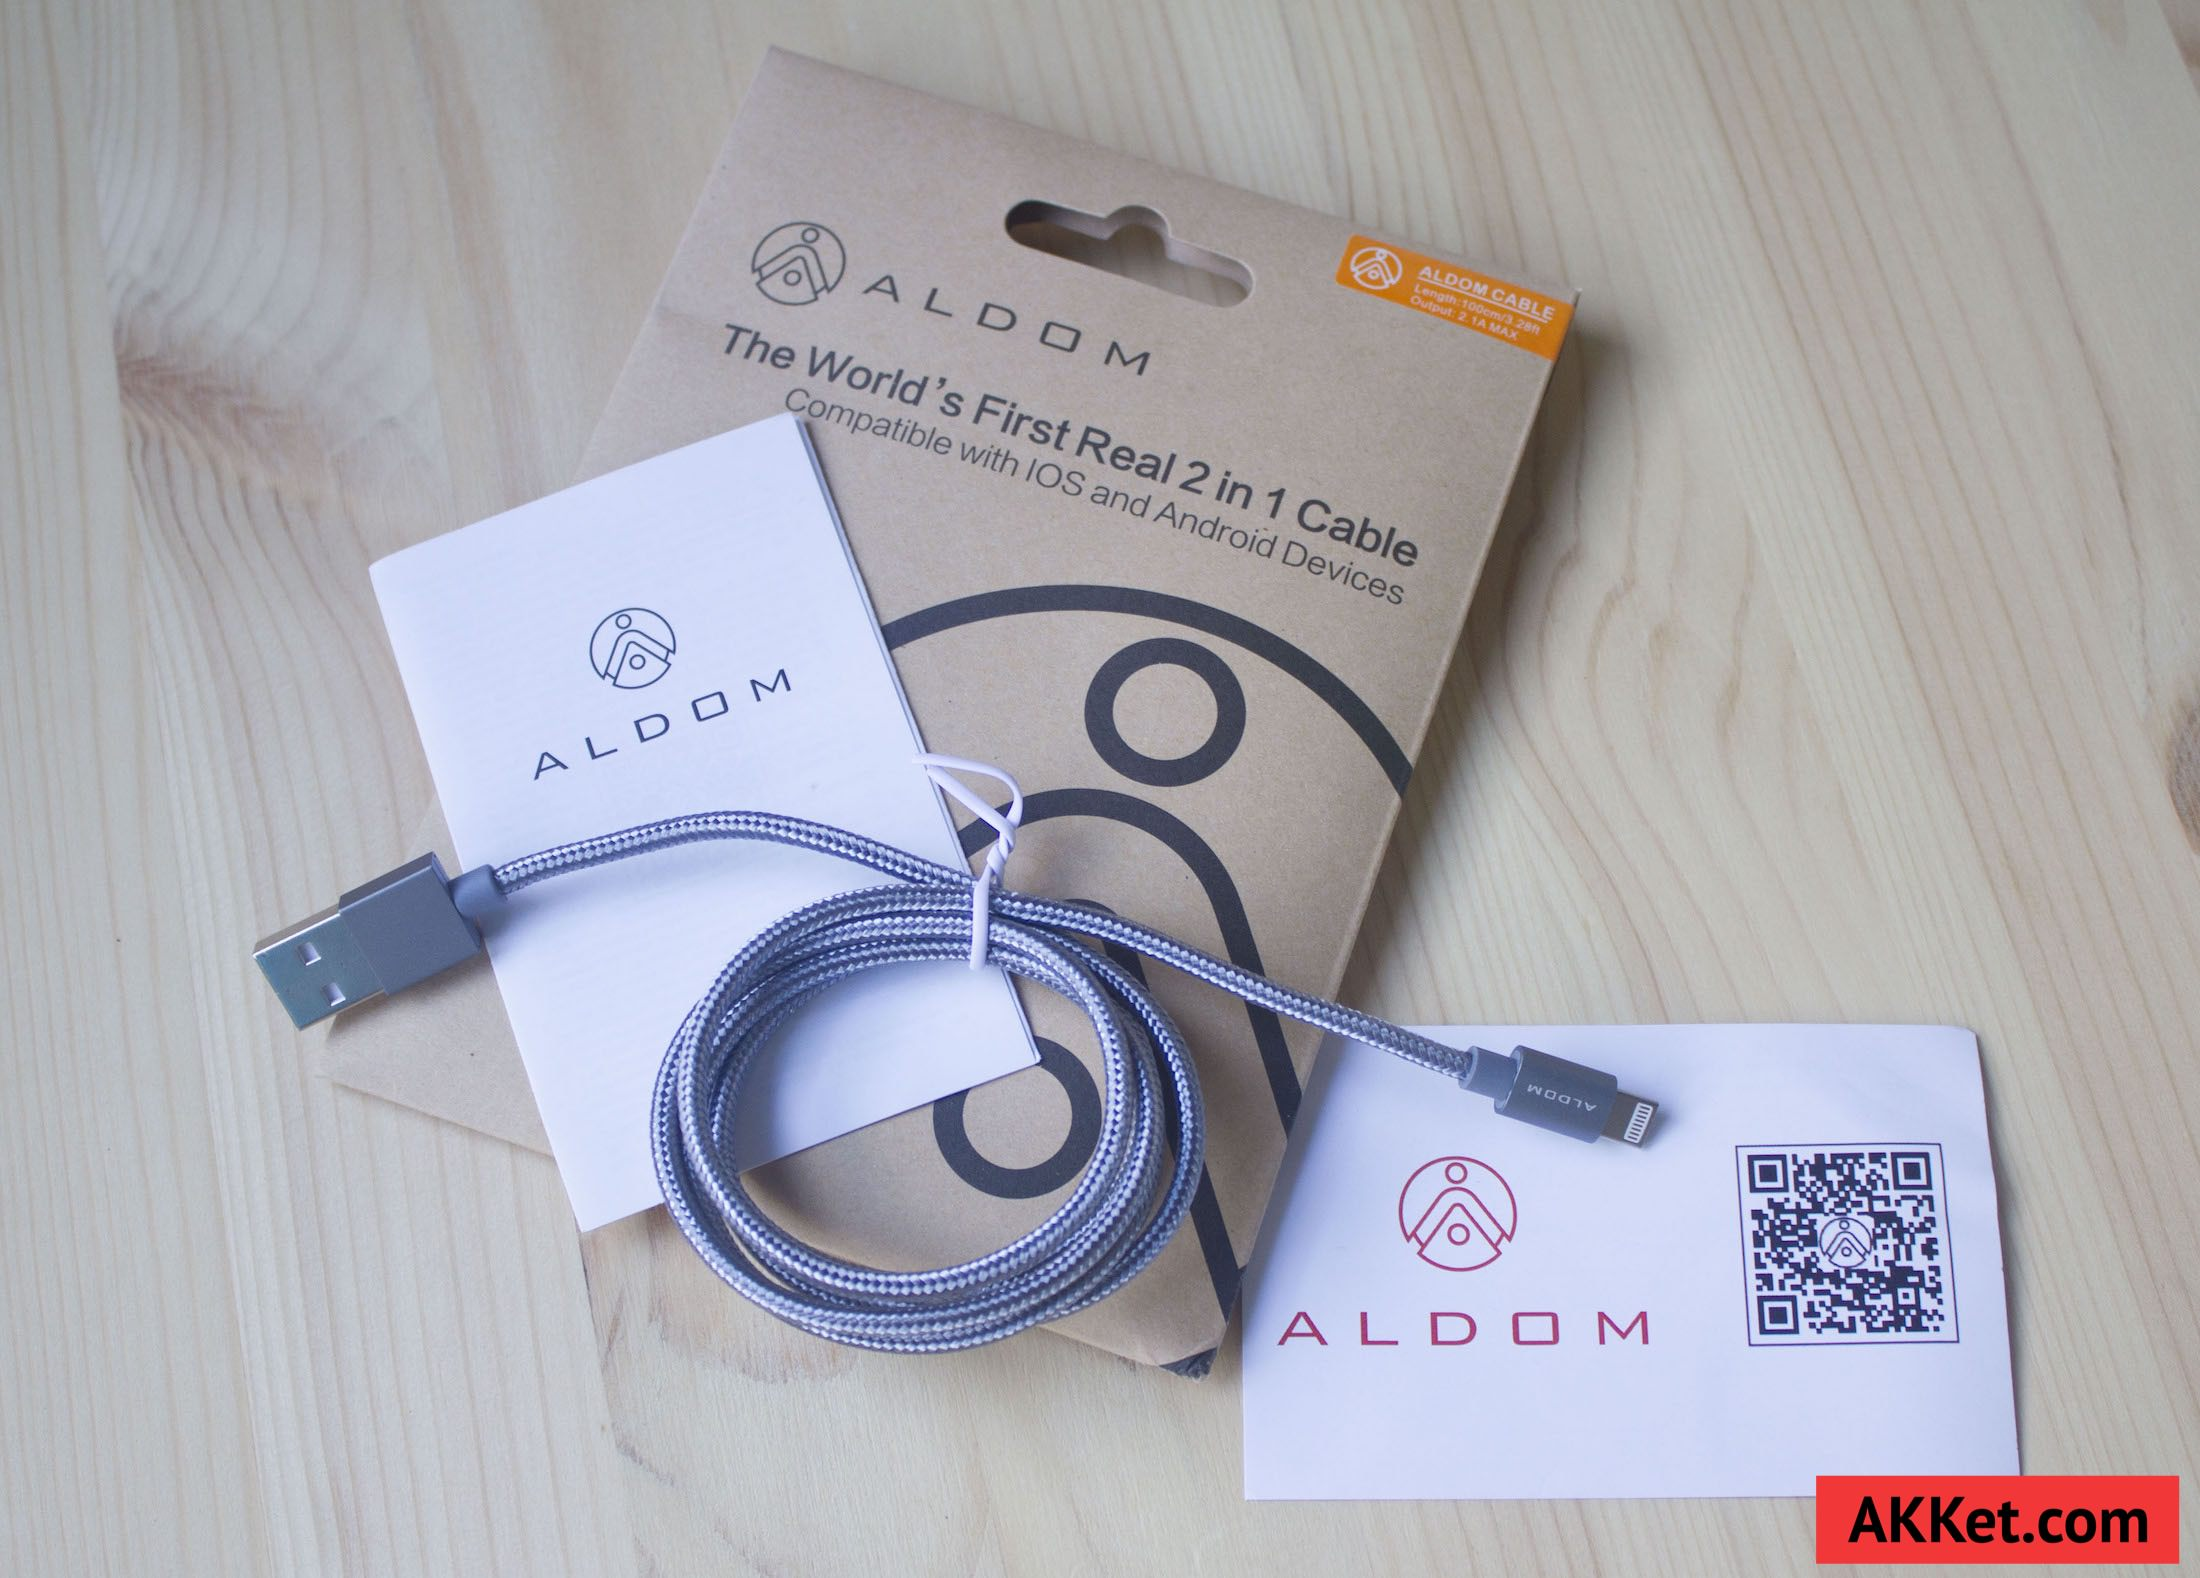 ALDOM Nylon Cable Lightning microUSB 4